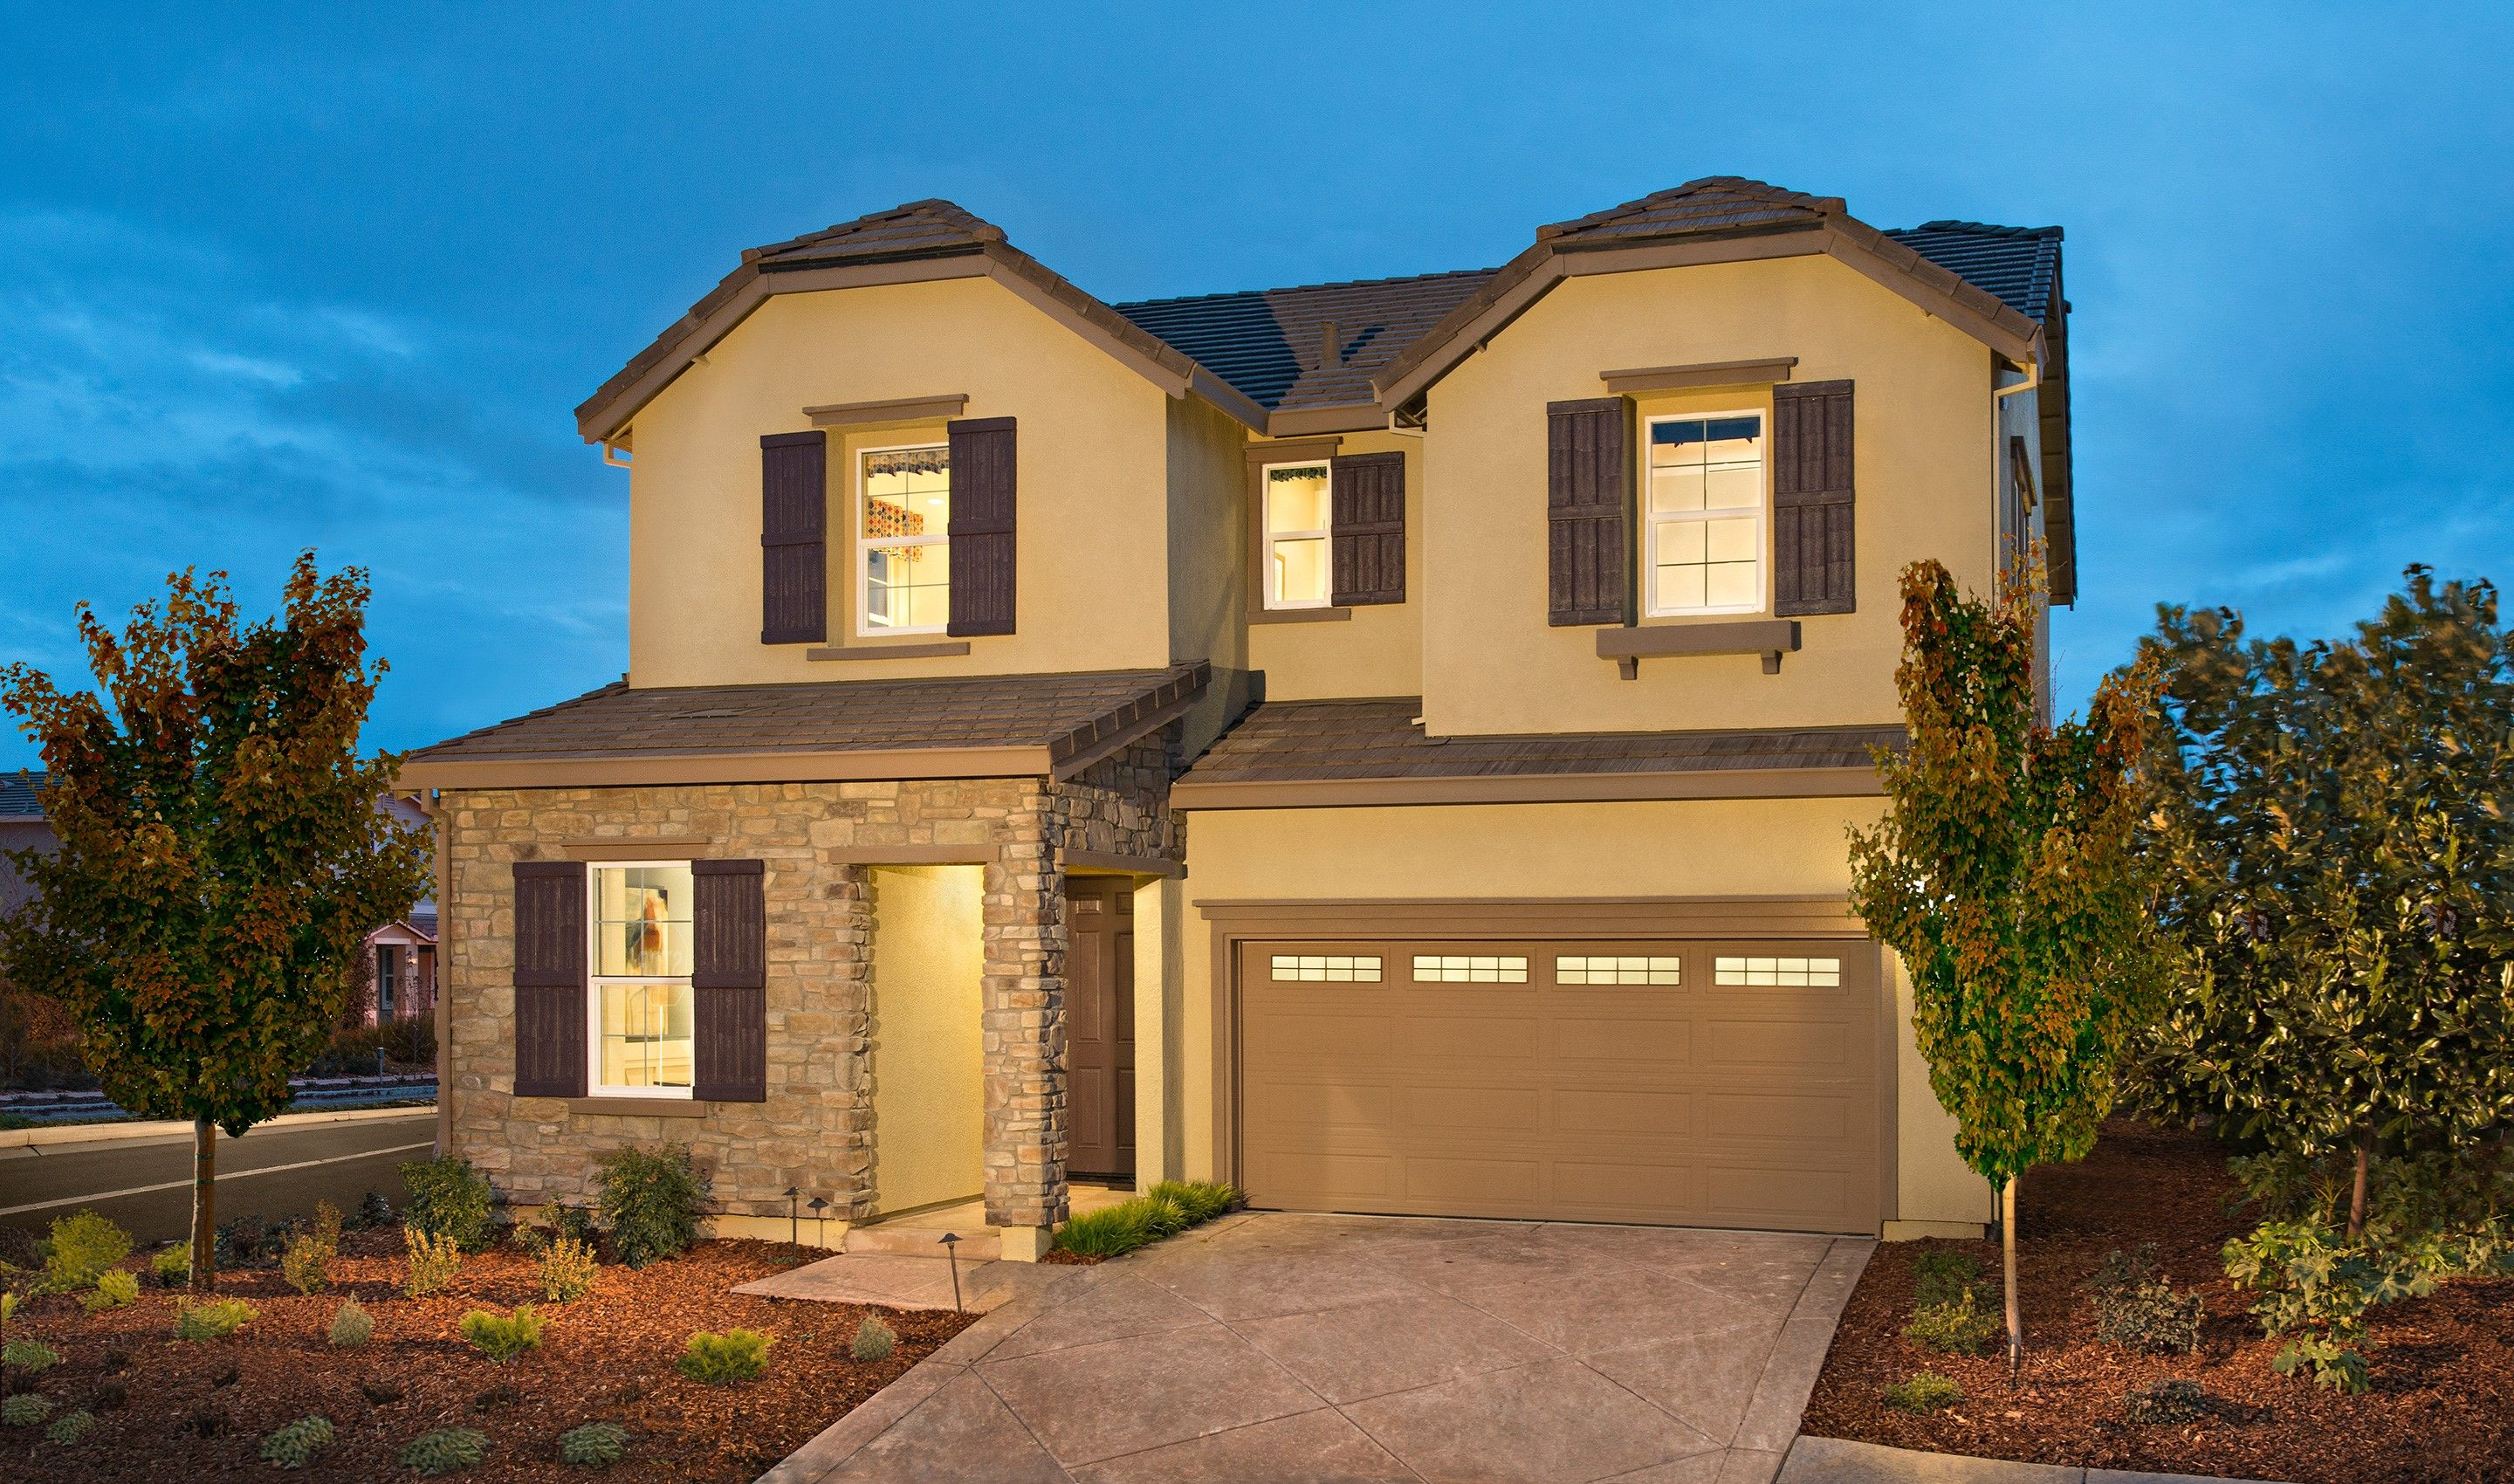 Single Family for Sale at Parkwalk At Westshore - Prairie 3700 Manera Rica Sacramento, California 95834 United States